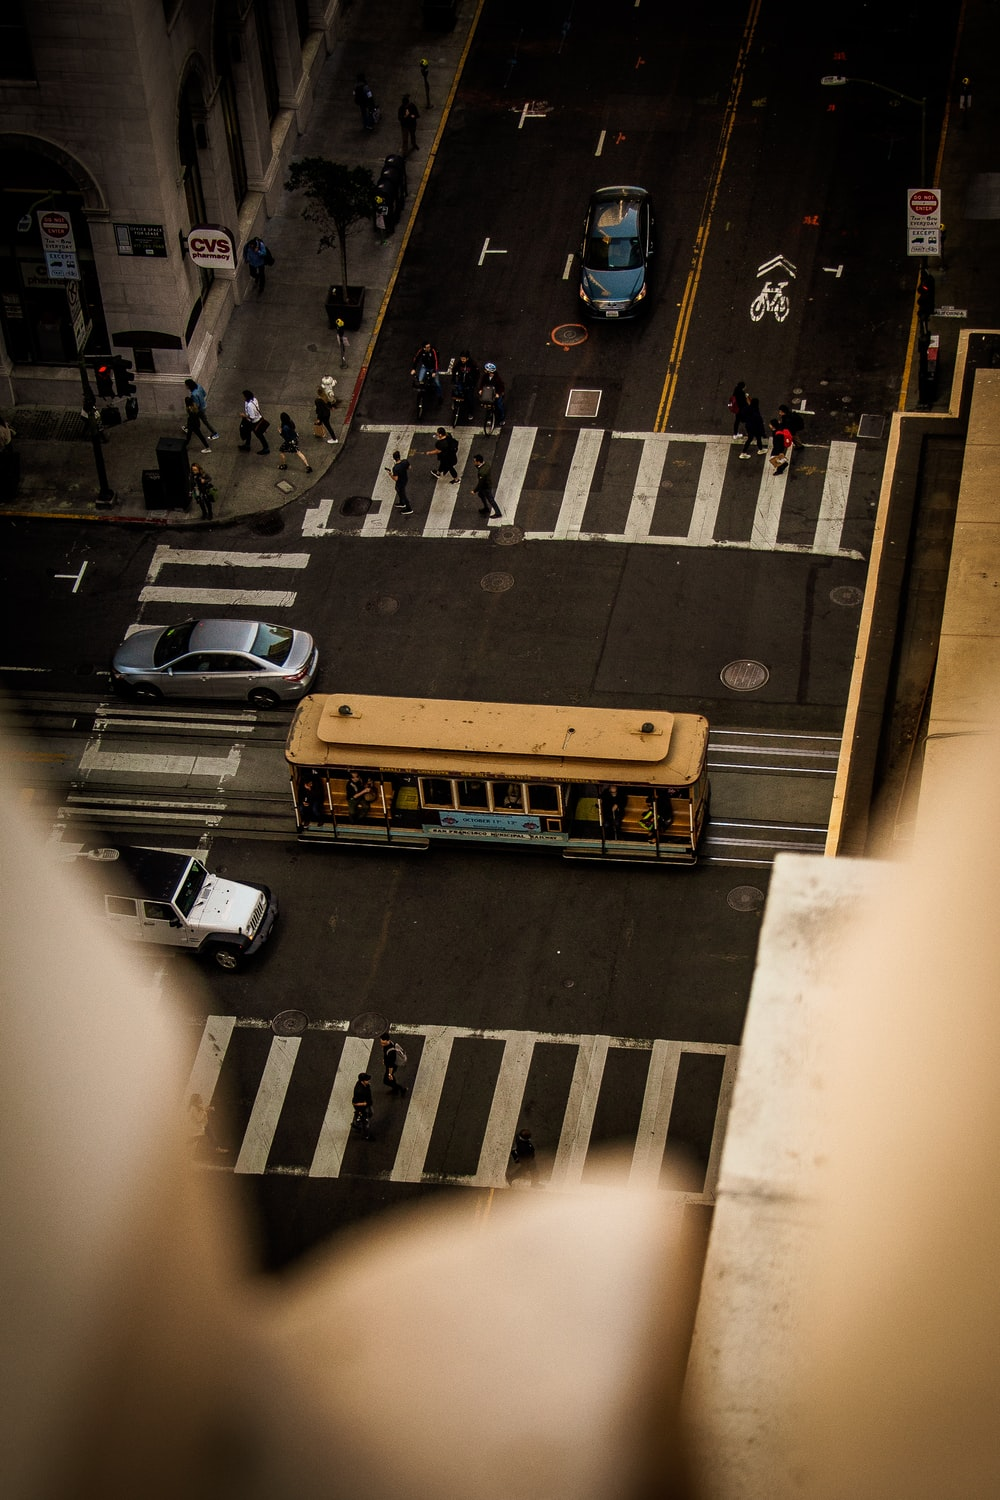 yellow bus on paved road